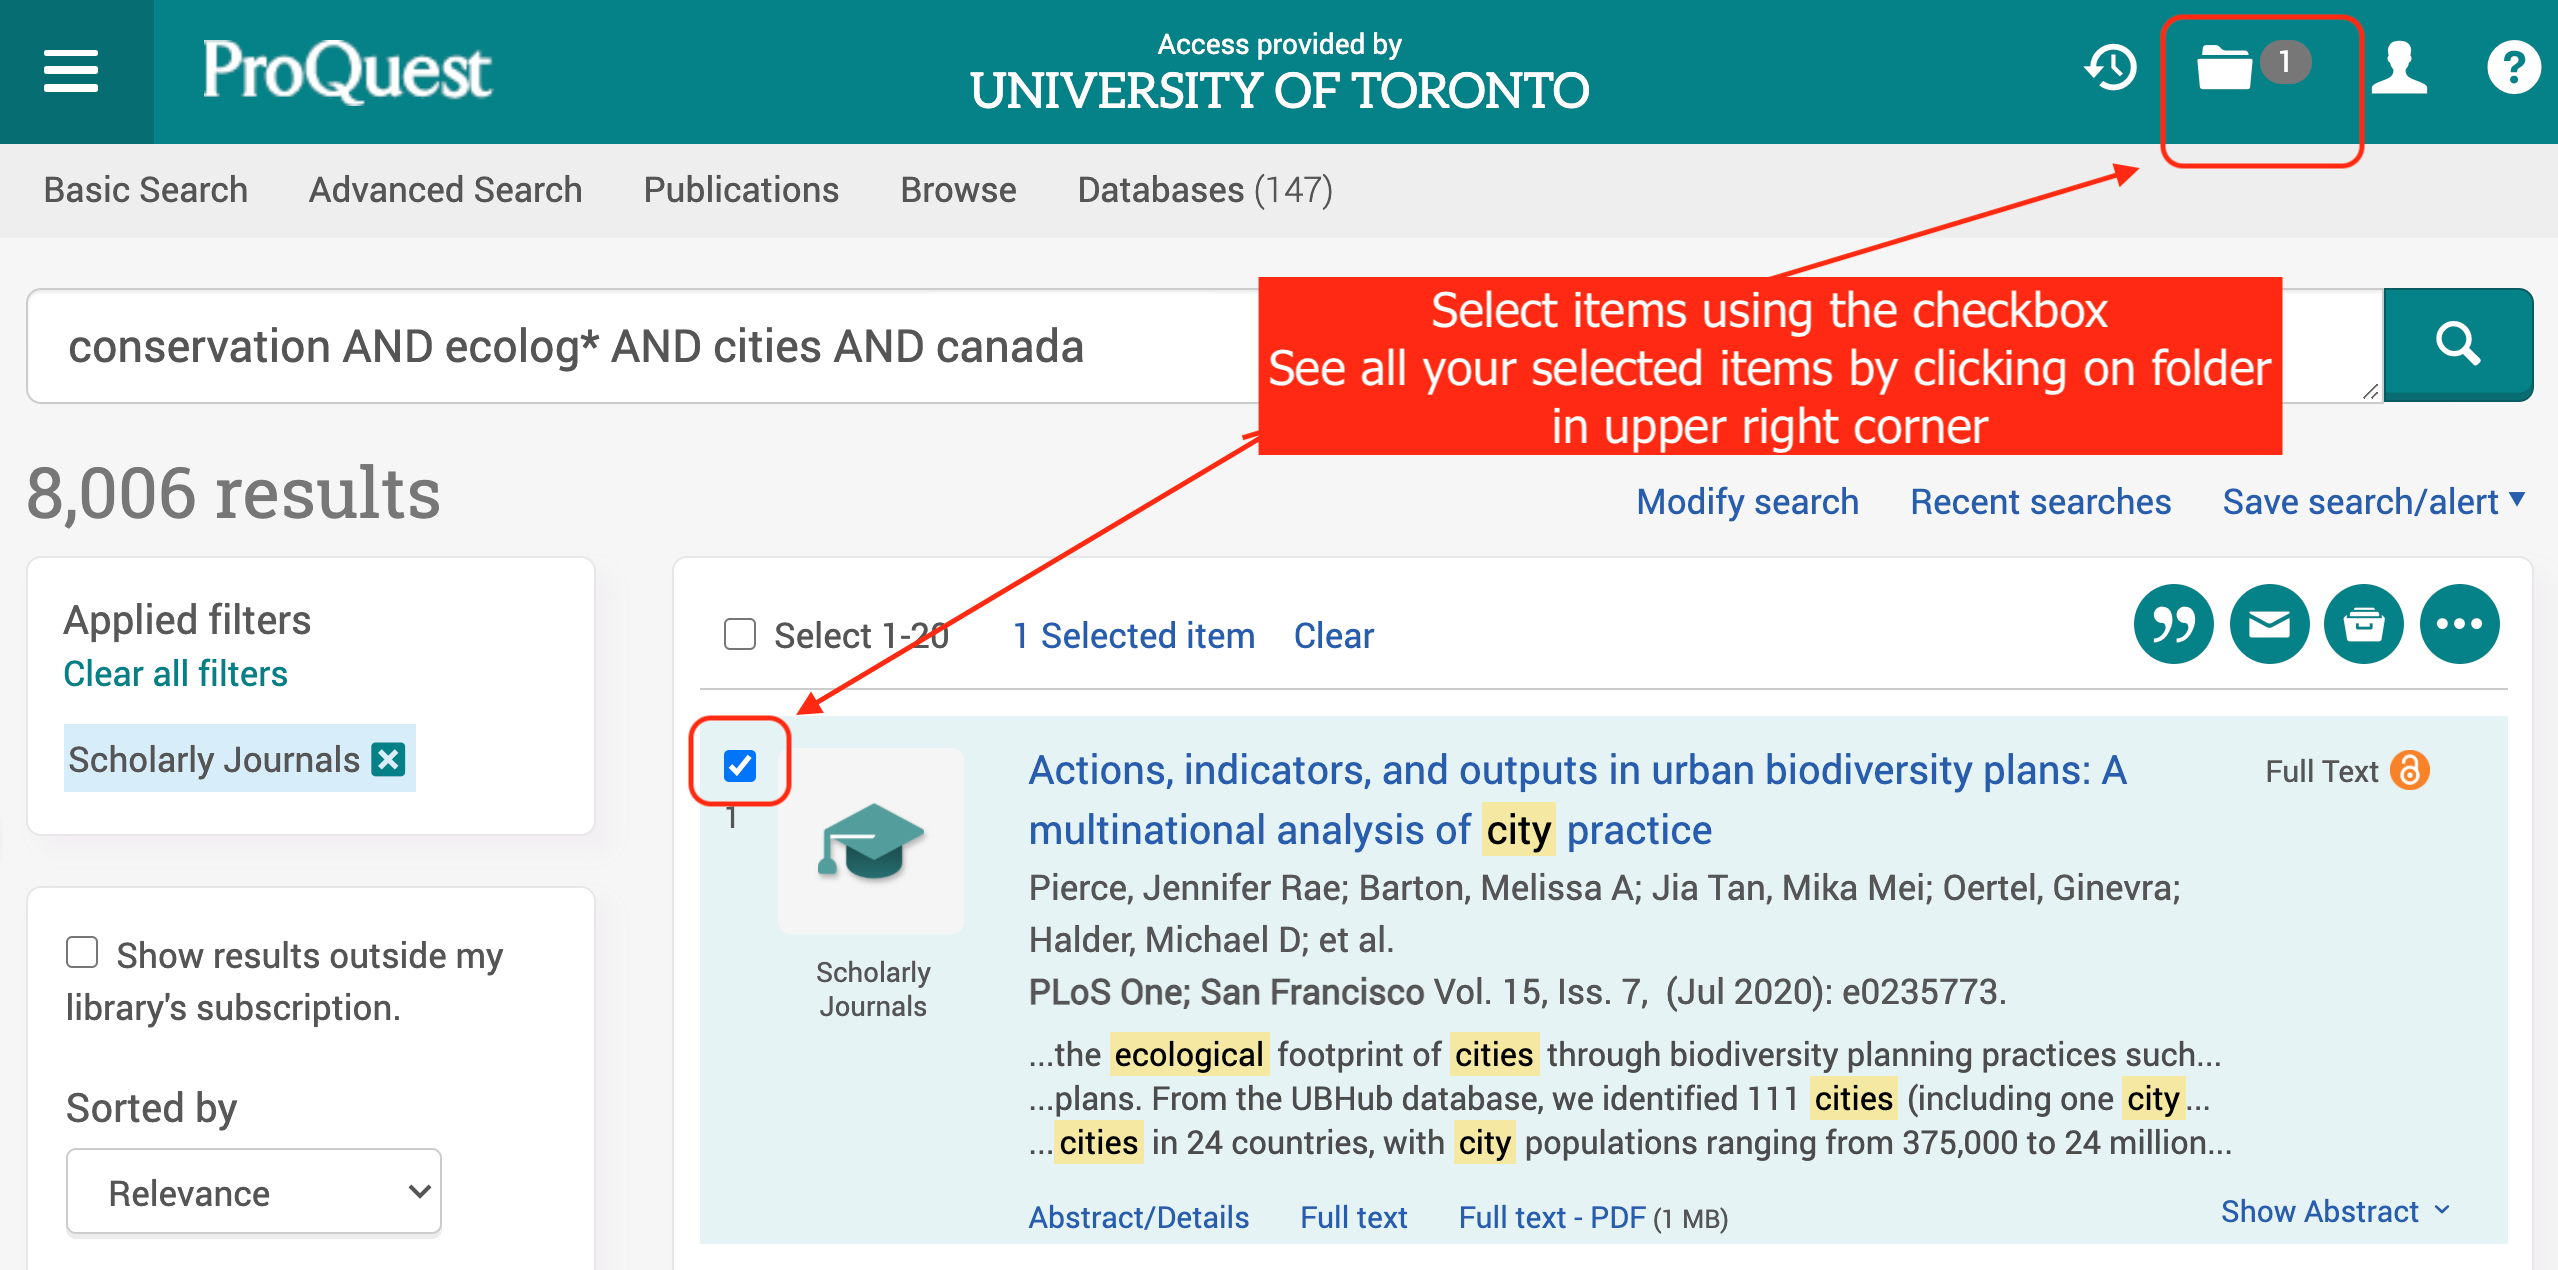 Screen shot  ProQuest Results for  conservation AND ecolog* AND cities AND canada. Select items using check box and view all selected item with the folder icon in upper right corner.